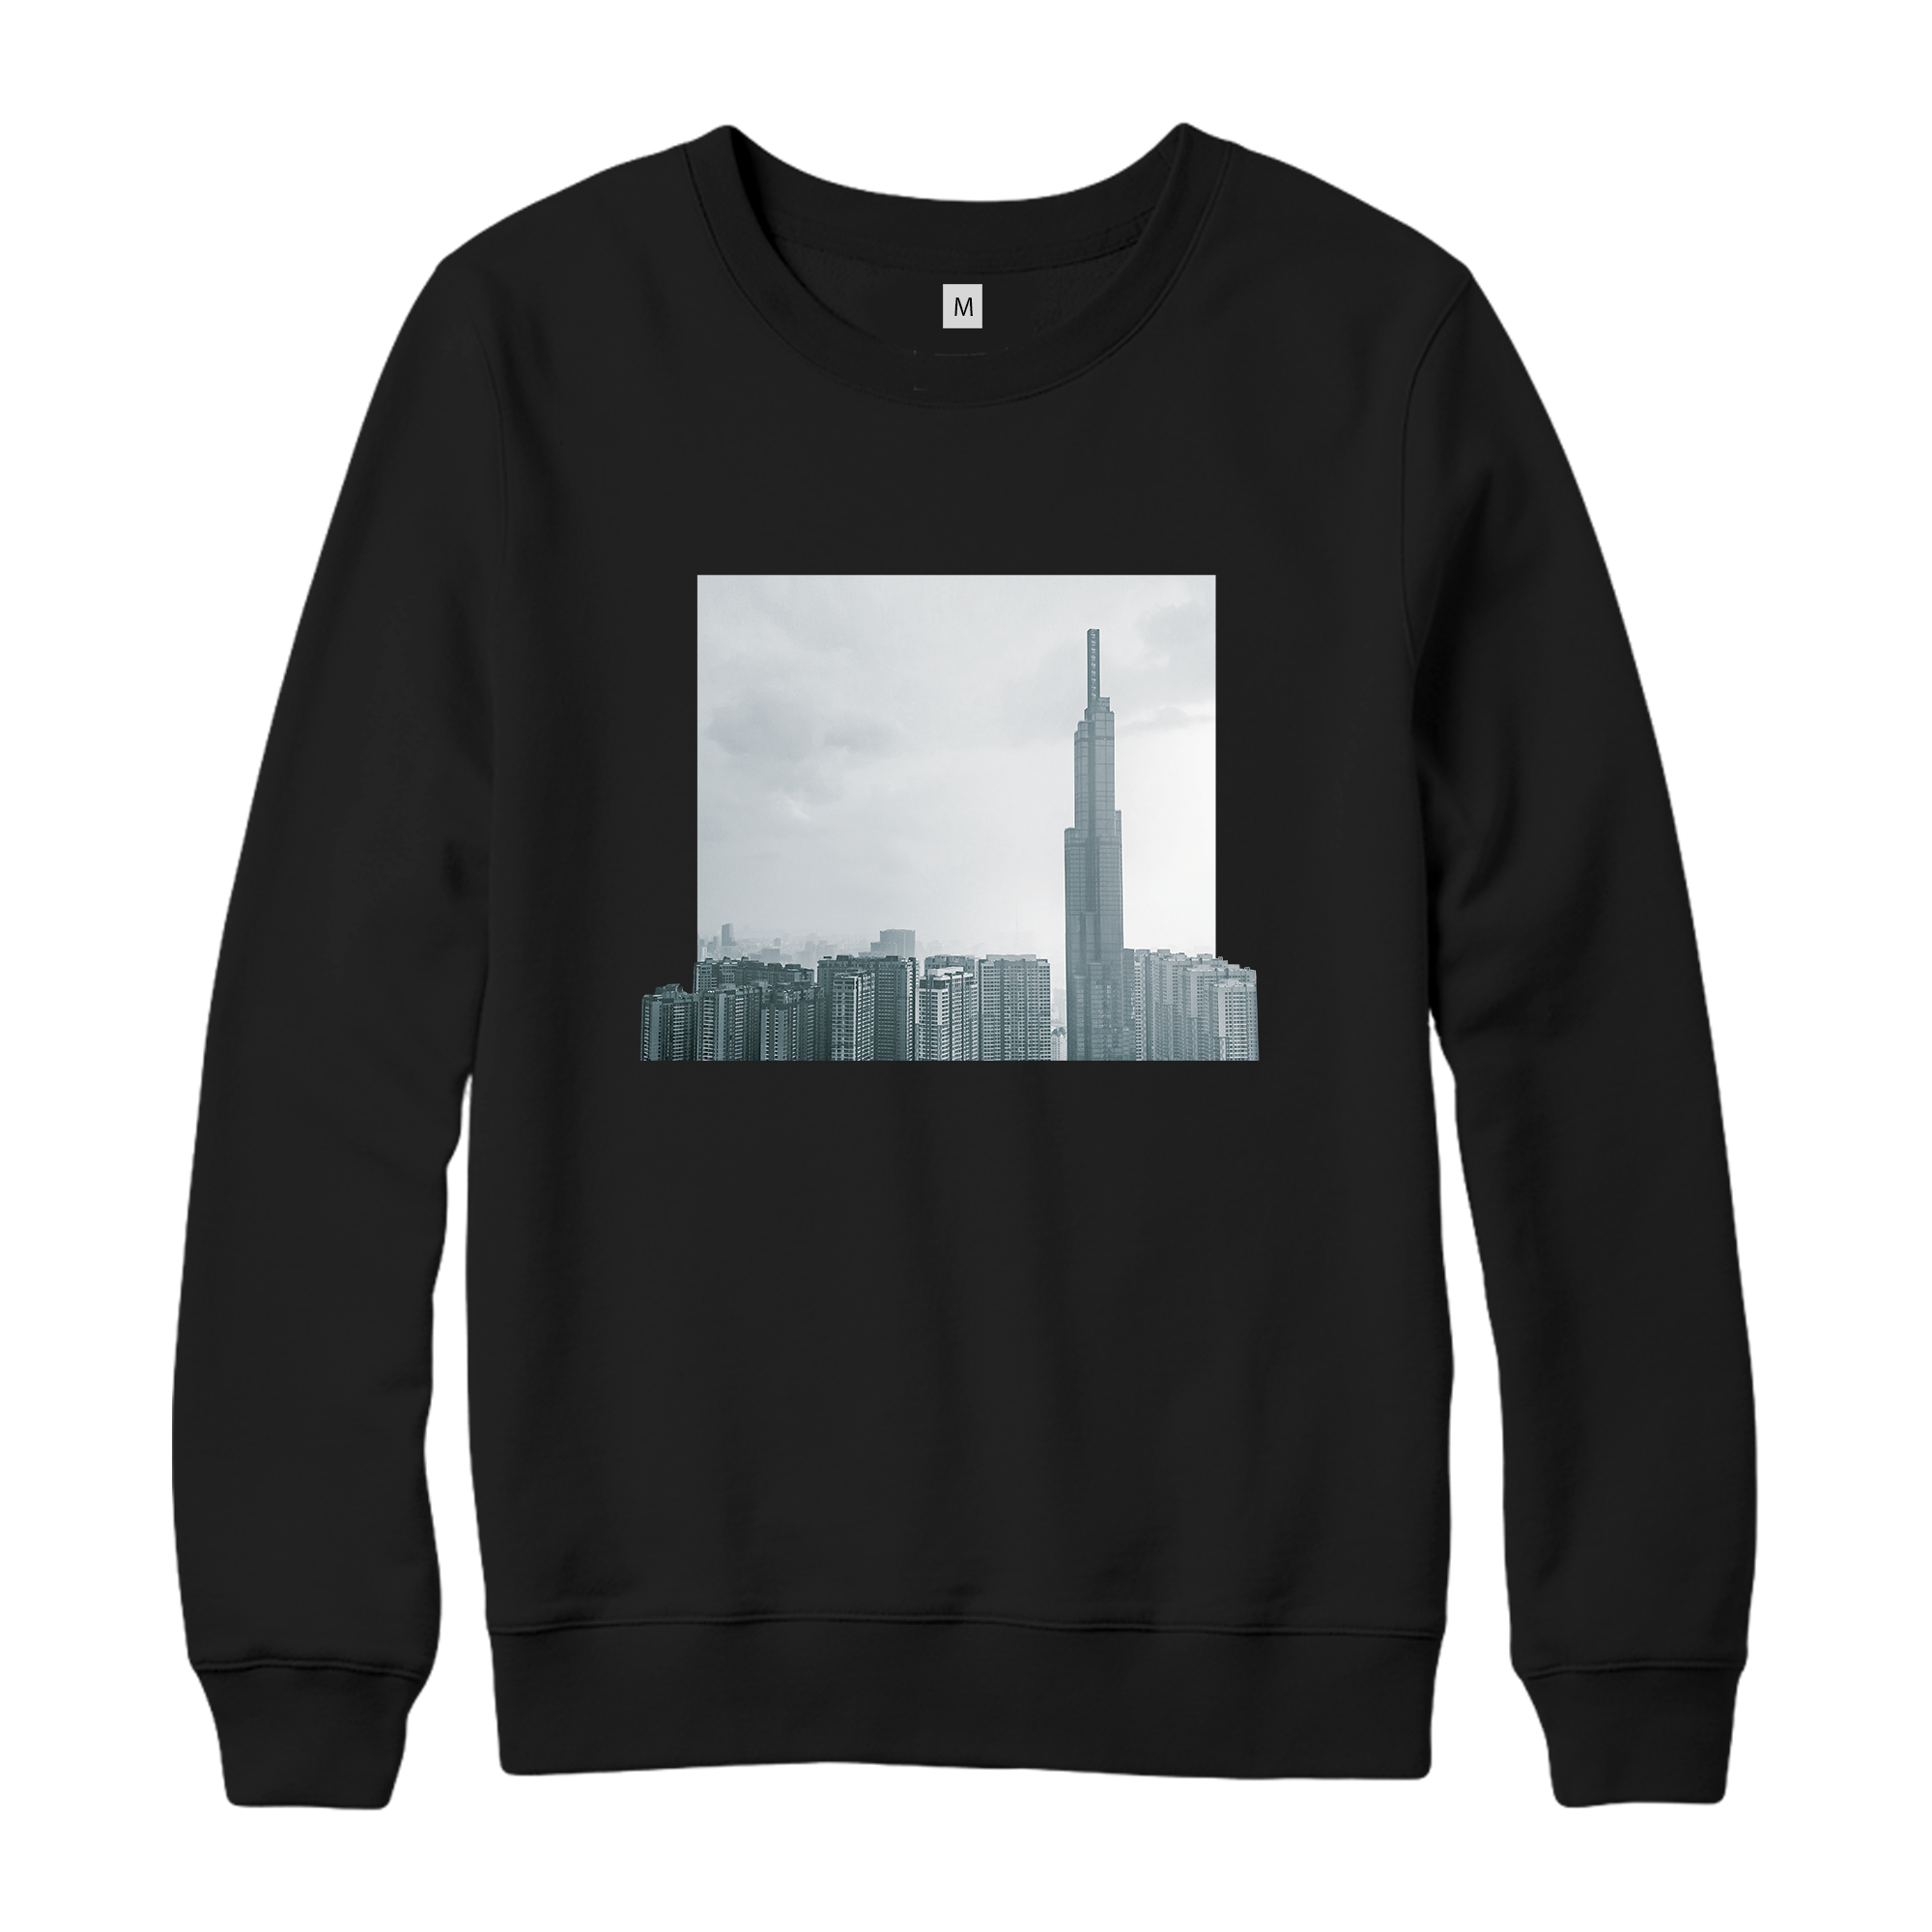 Saigon Landscape Sweater